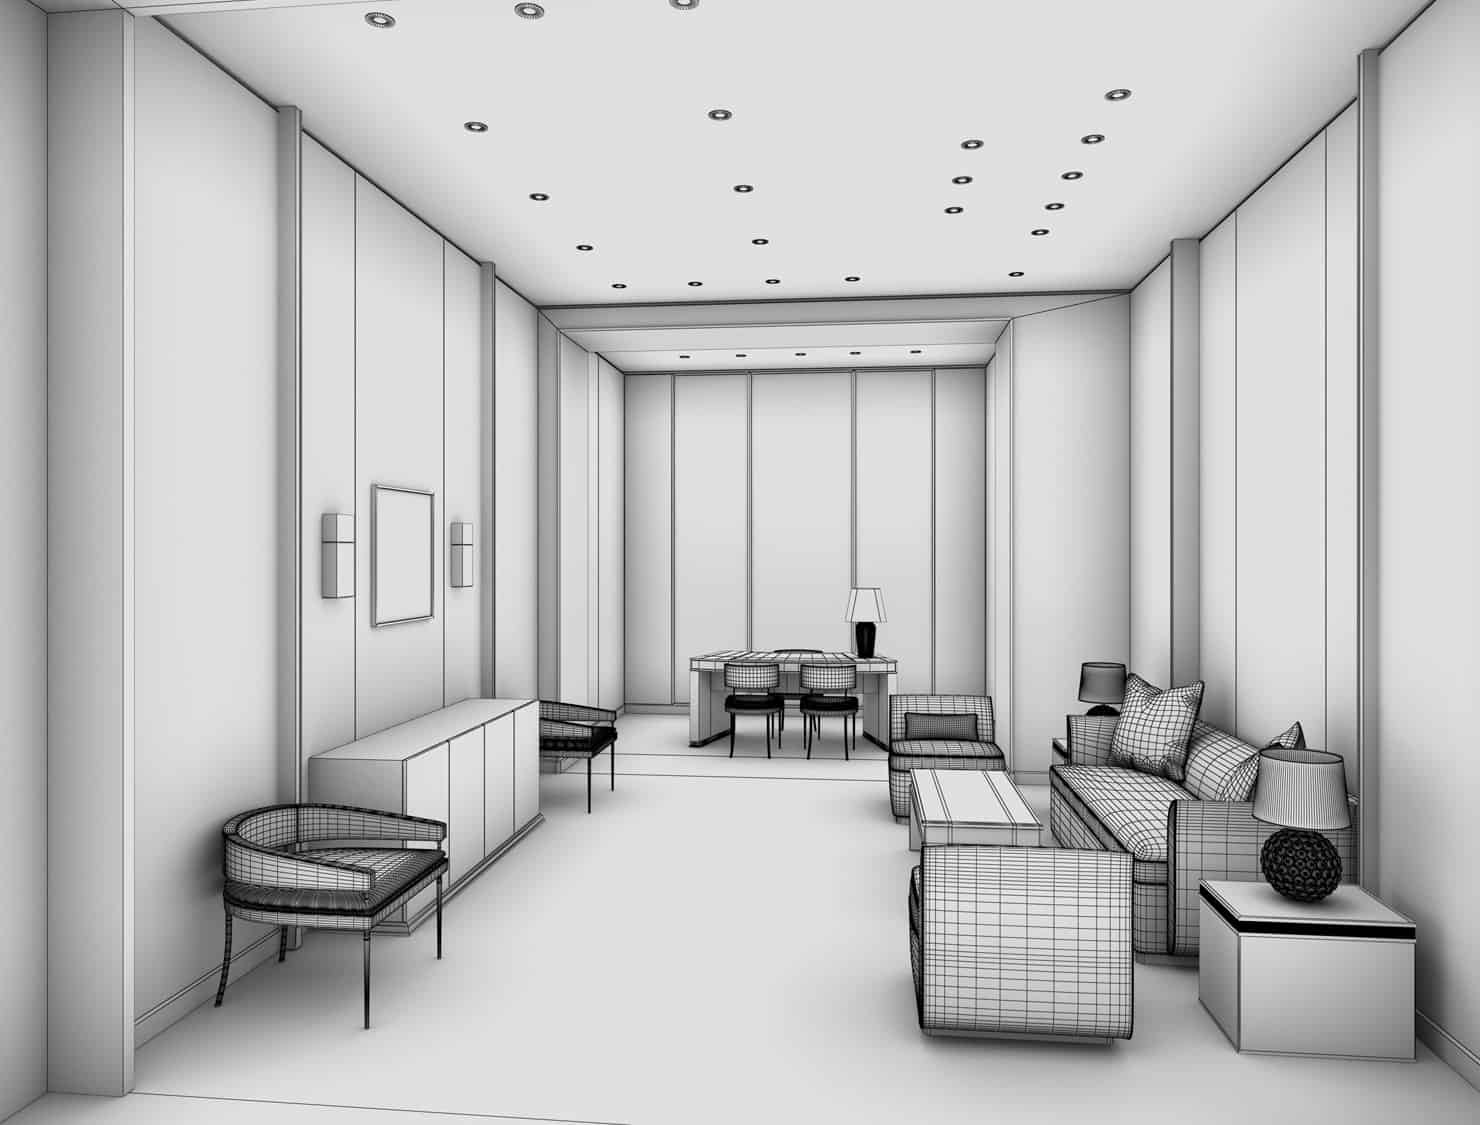 Tiffany & Co. Jewelry Store Lounge Wireframe